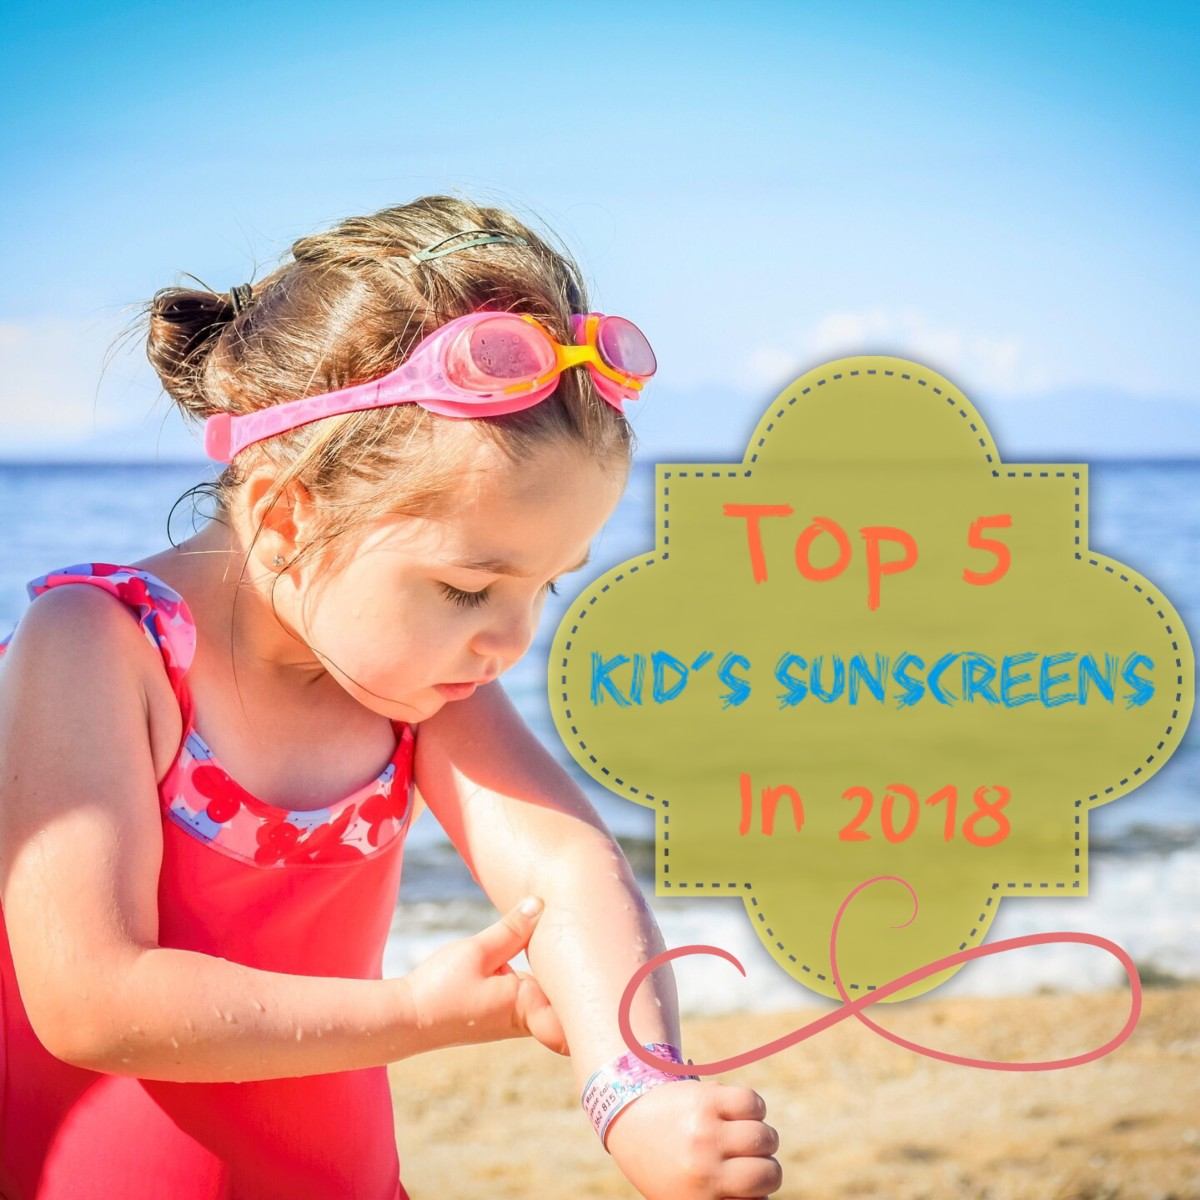 Top Five Sunscreens for Kids in 2018